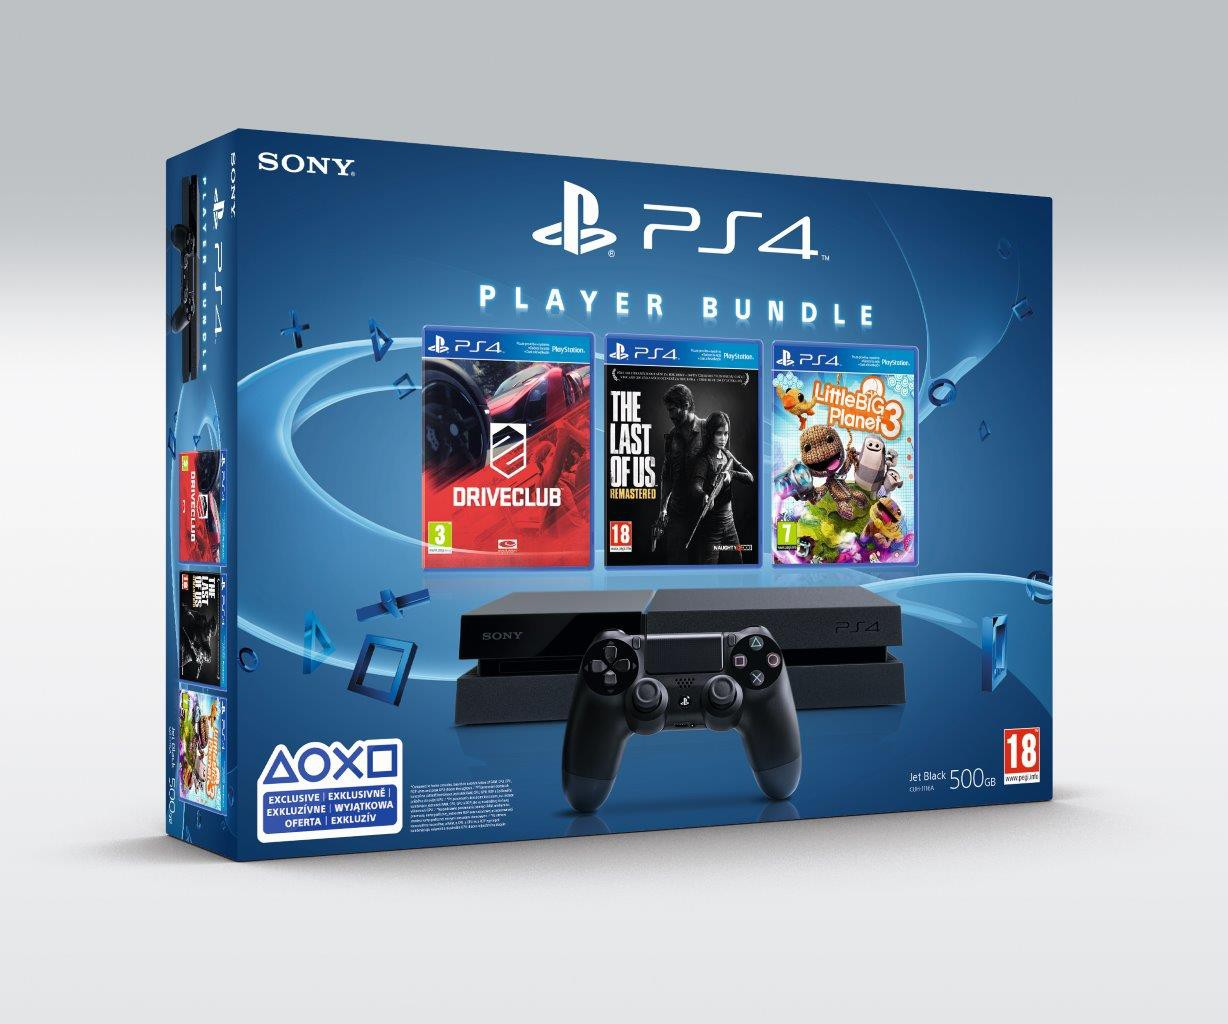 PlayStation 4 Player Bundle